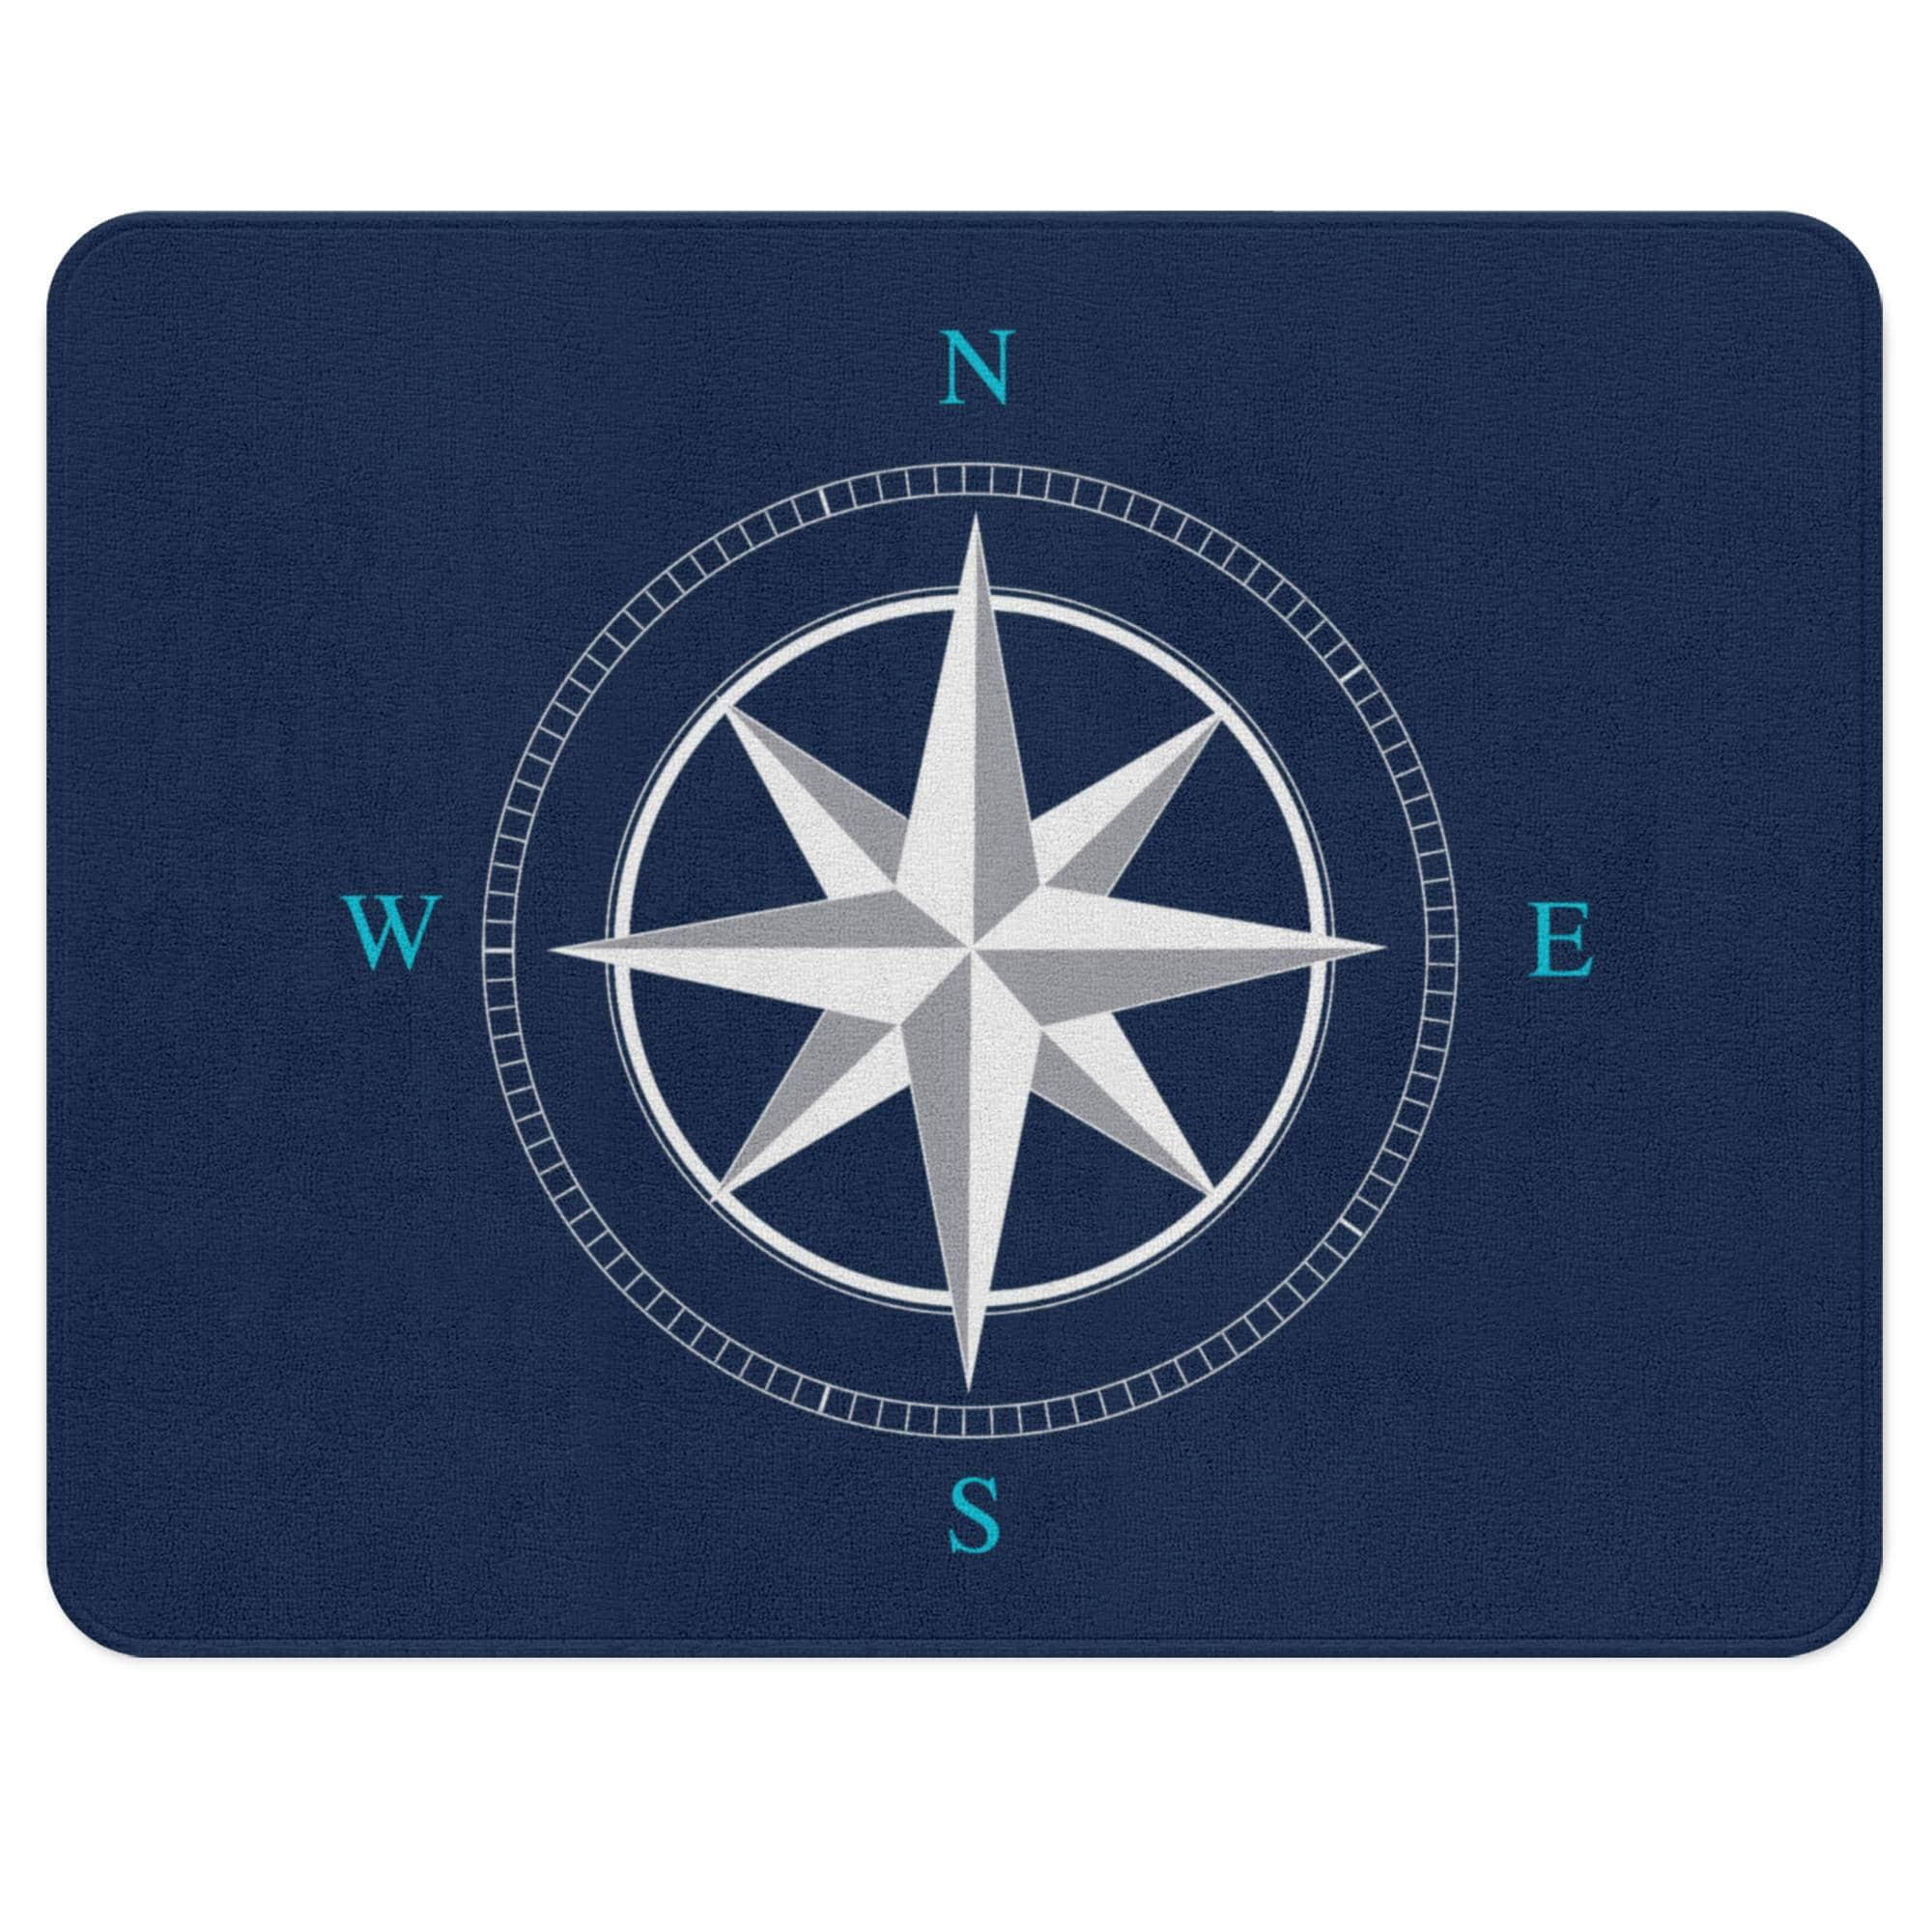 A navy blue nautical rug with a white wind rose in the center. Ideal for your child's nautical themed nursery.